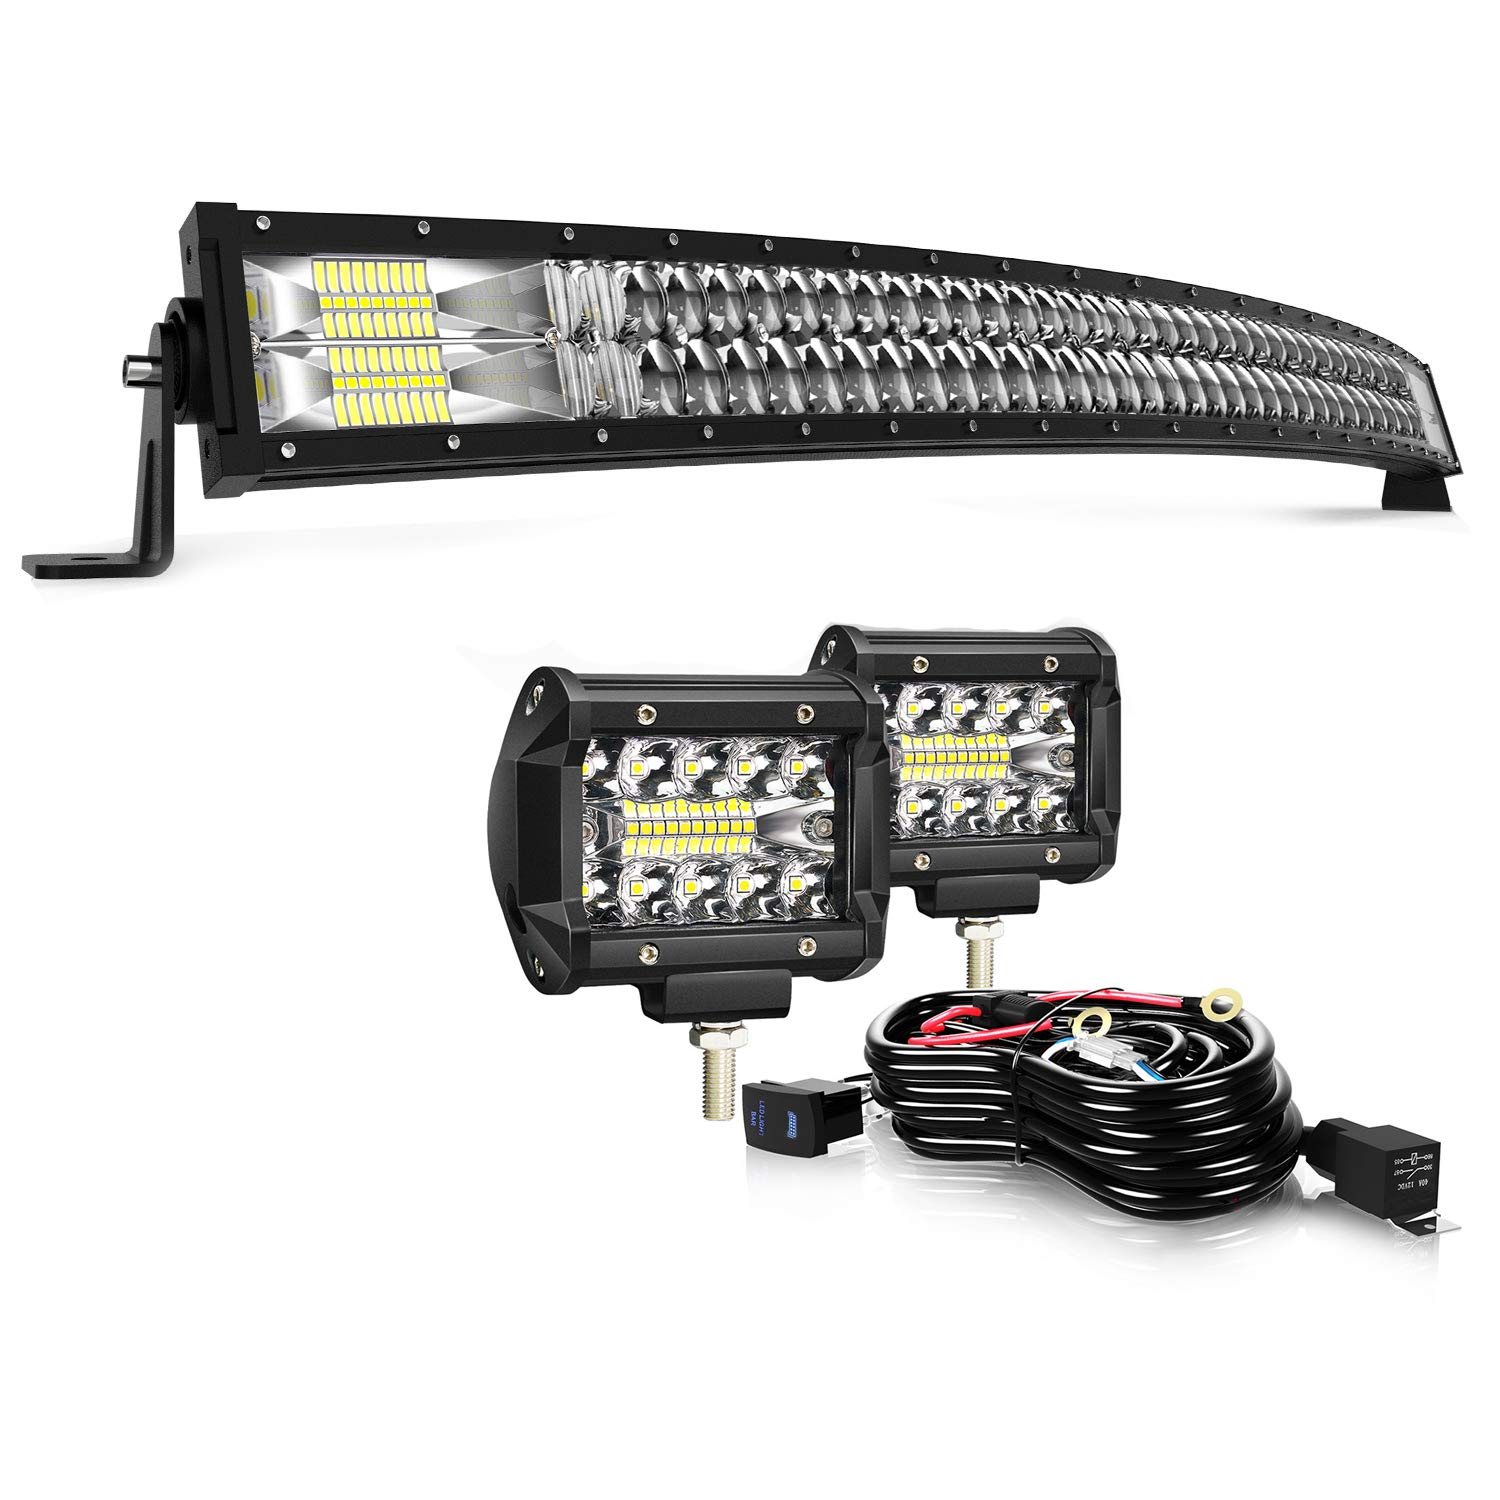 """42"""" Curved LED Light Bar KEENAXIS 240W 5D Upgrade Chipset W/ 2Pcs 4in 60W Driving Fog Lamp with Rocker Switch Wiring Harness for Jeep Trucks Offroad Lighting Marine Boating Combo Beam Light Bars Kit"""